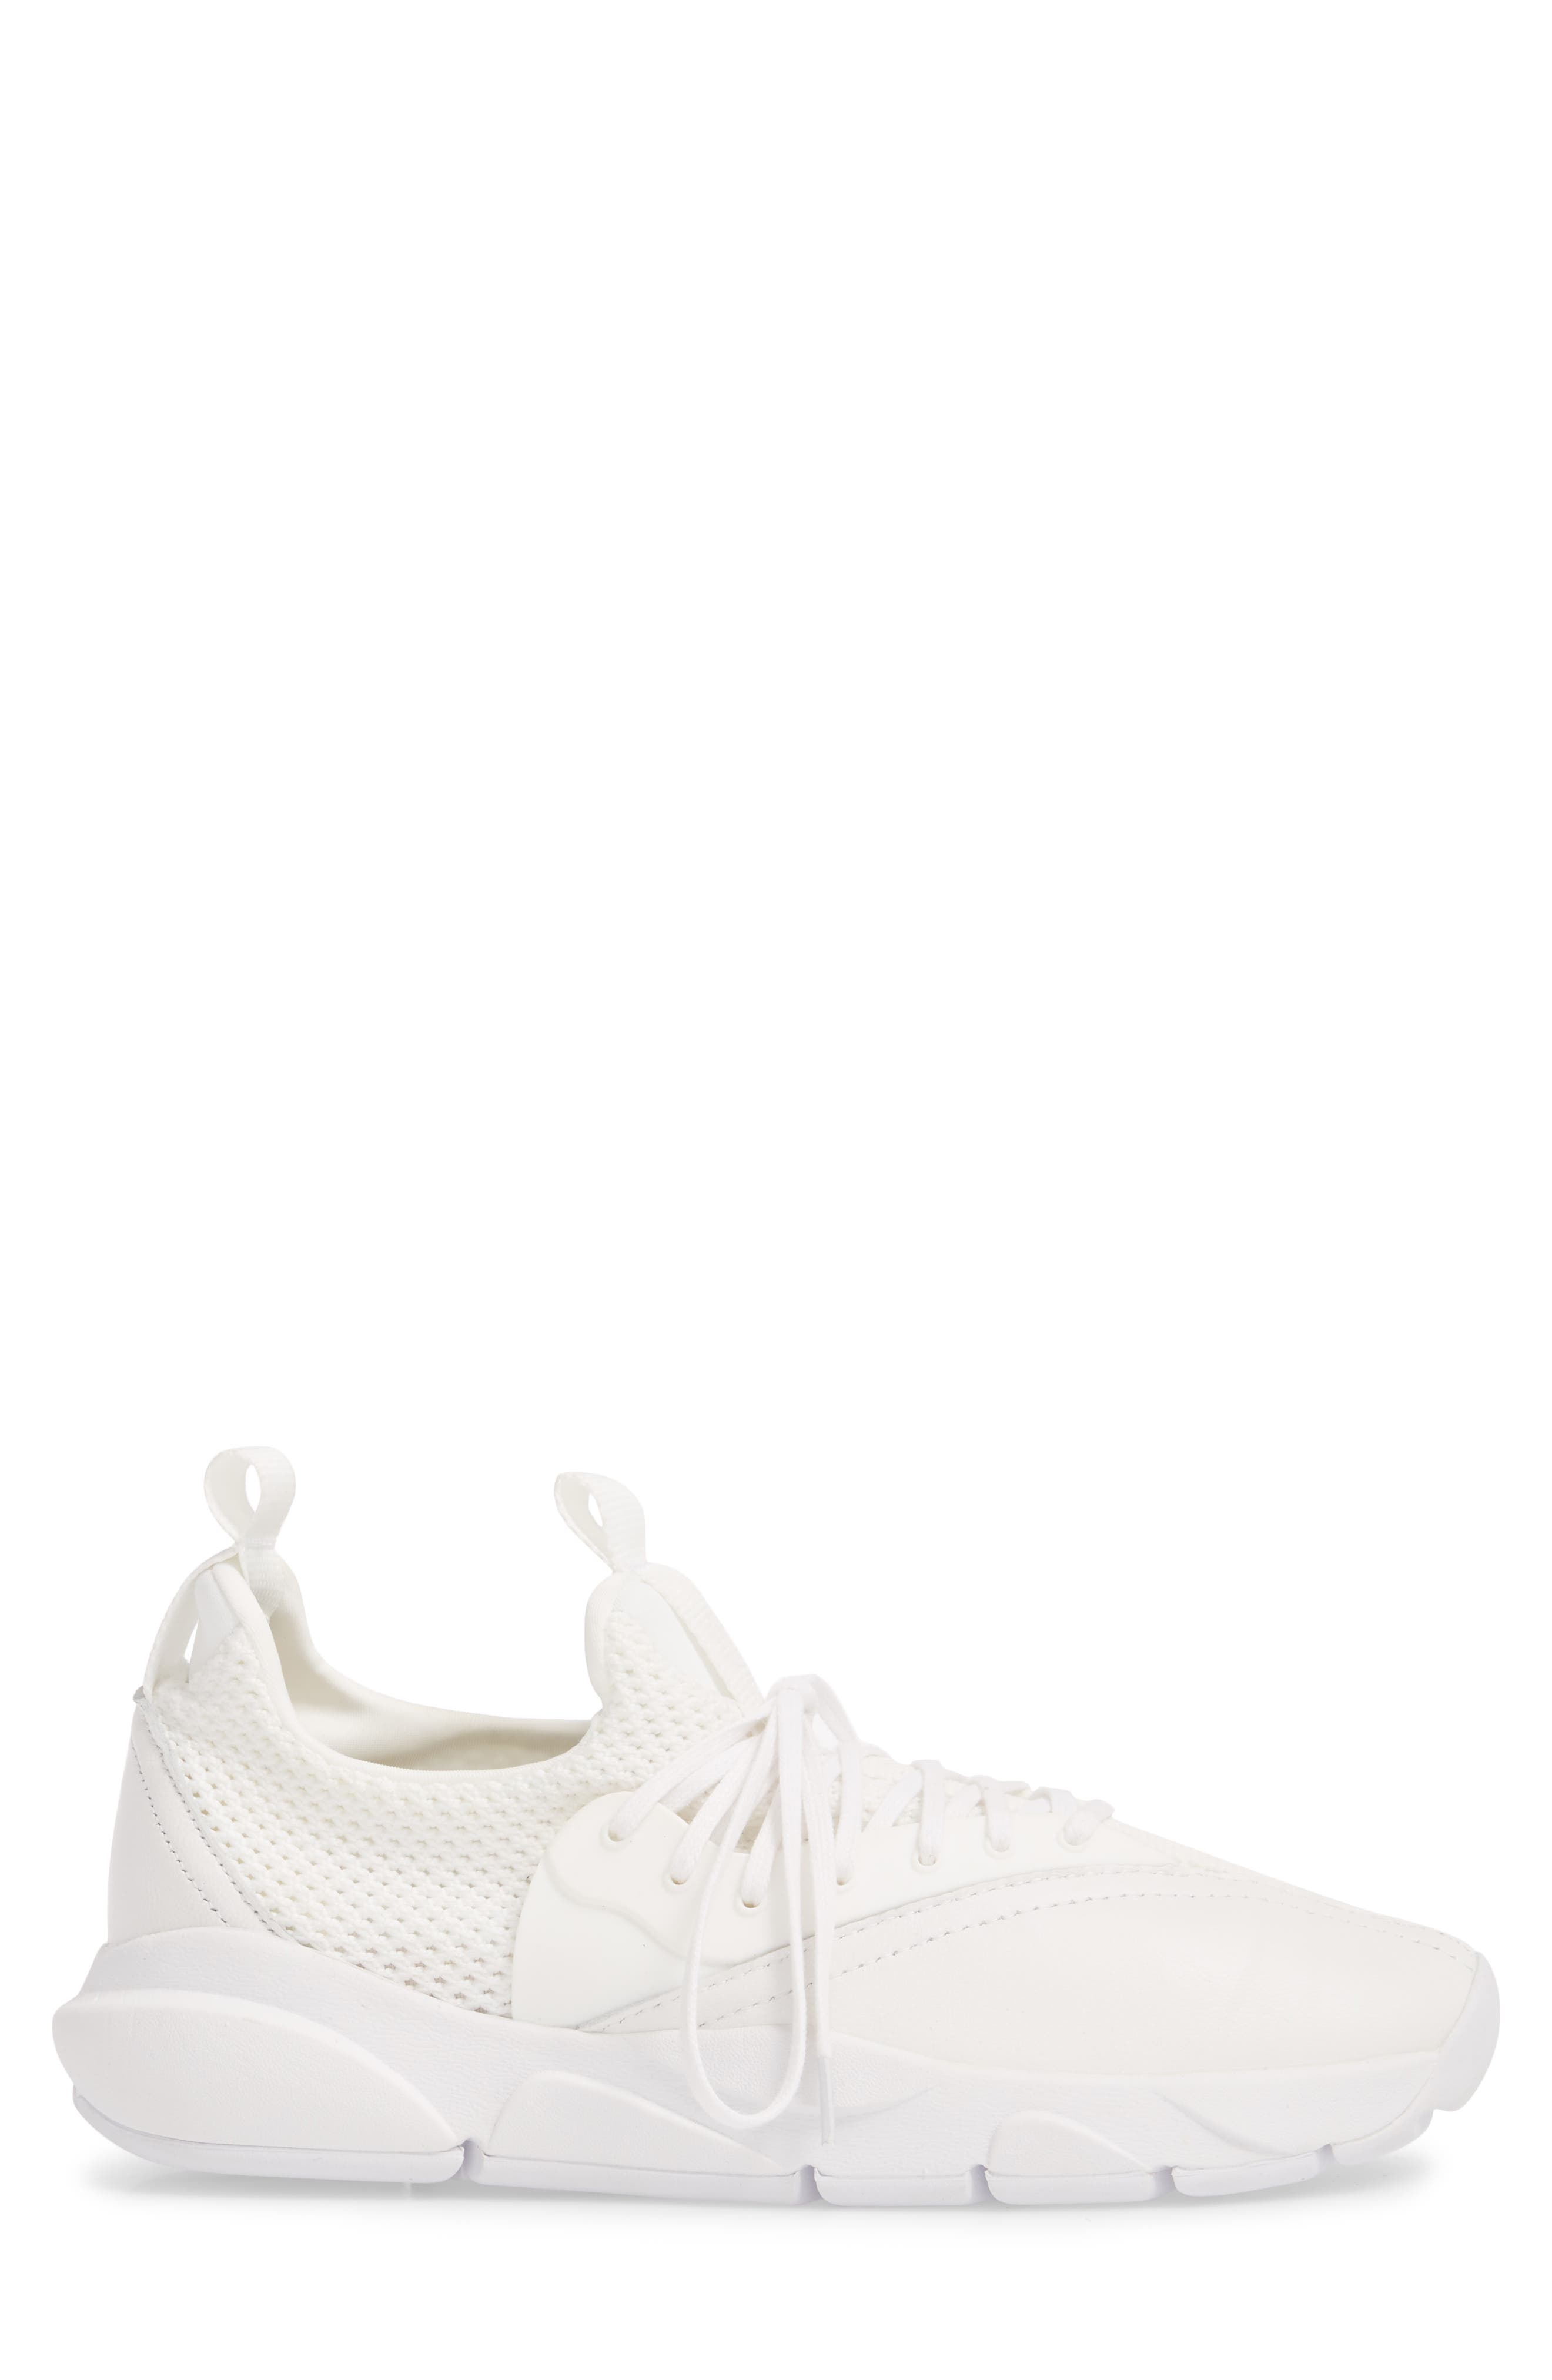 Clear Weather The Cloud Stryke Sneaker,                             Alternate thumbnail 3, color,                             White Hawk